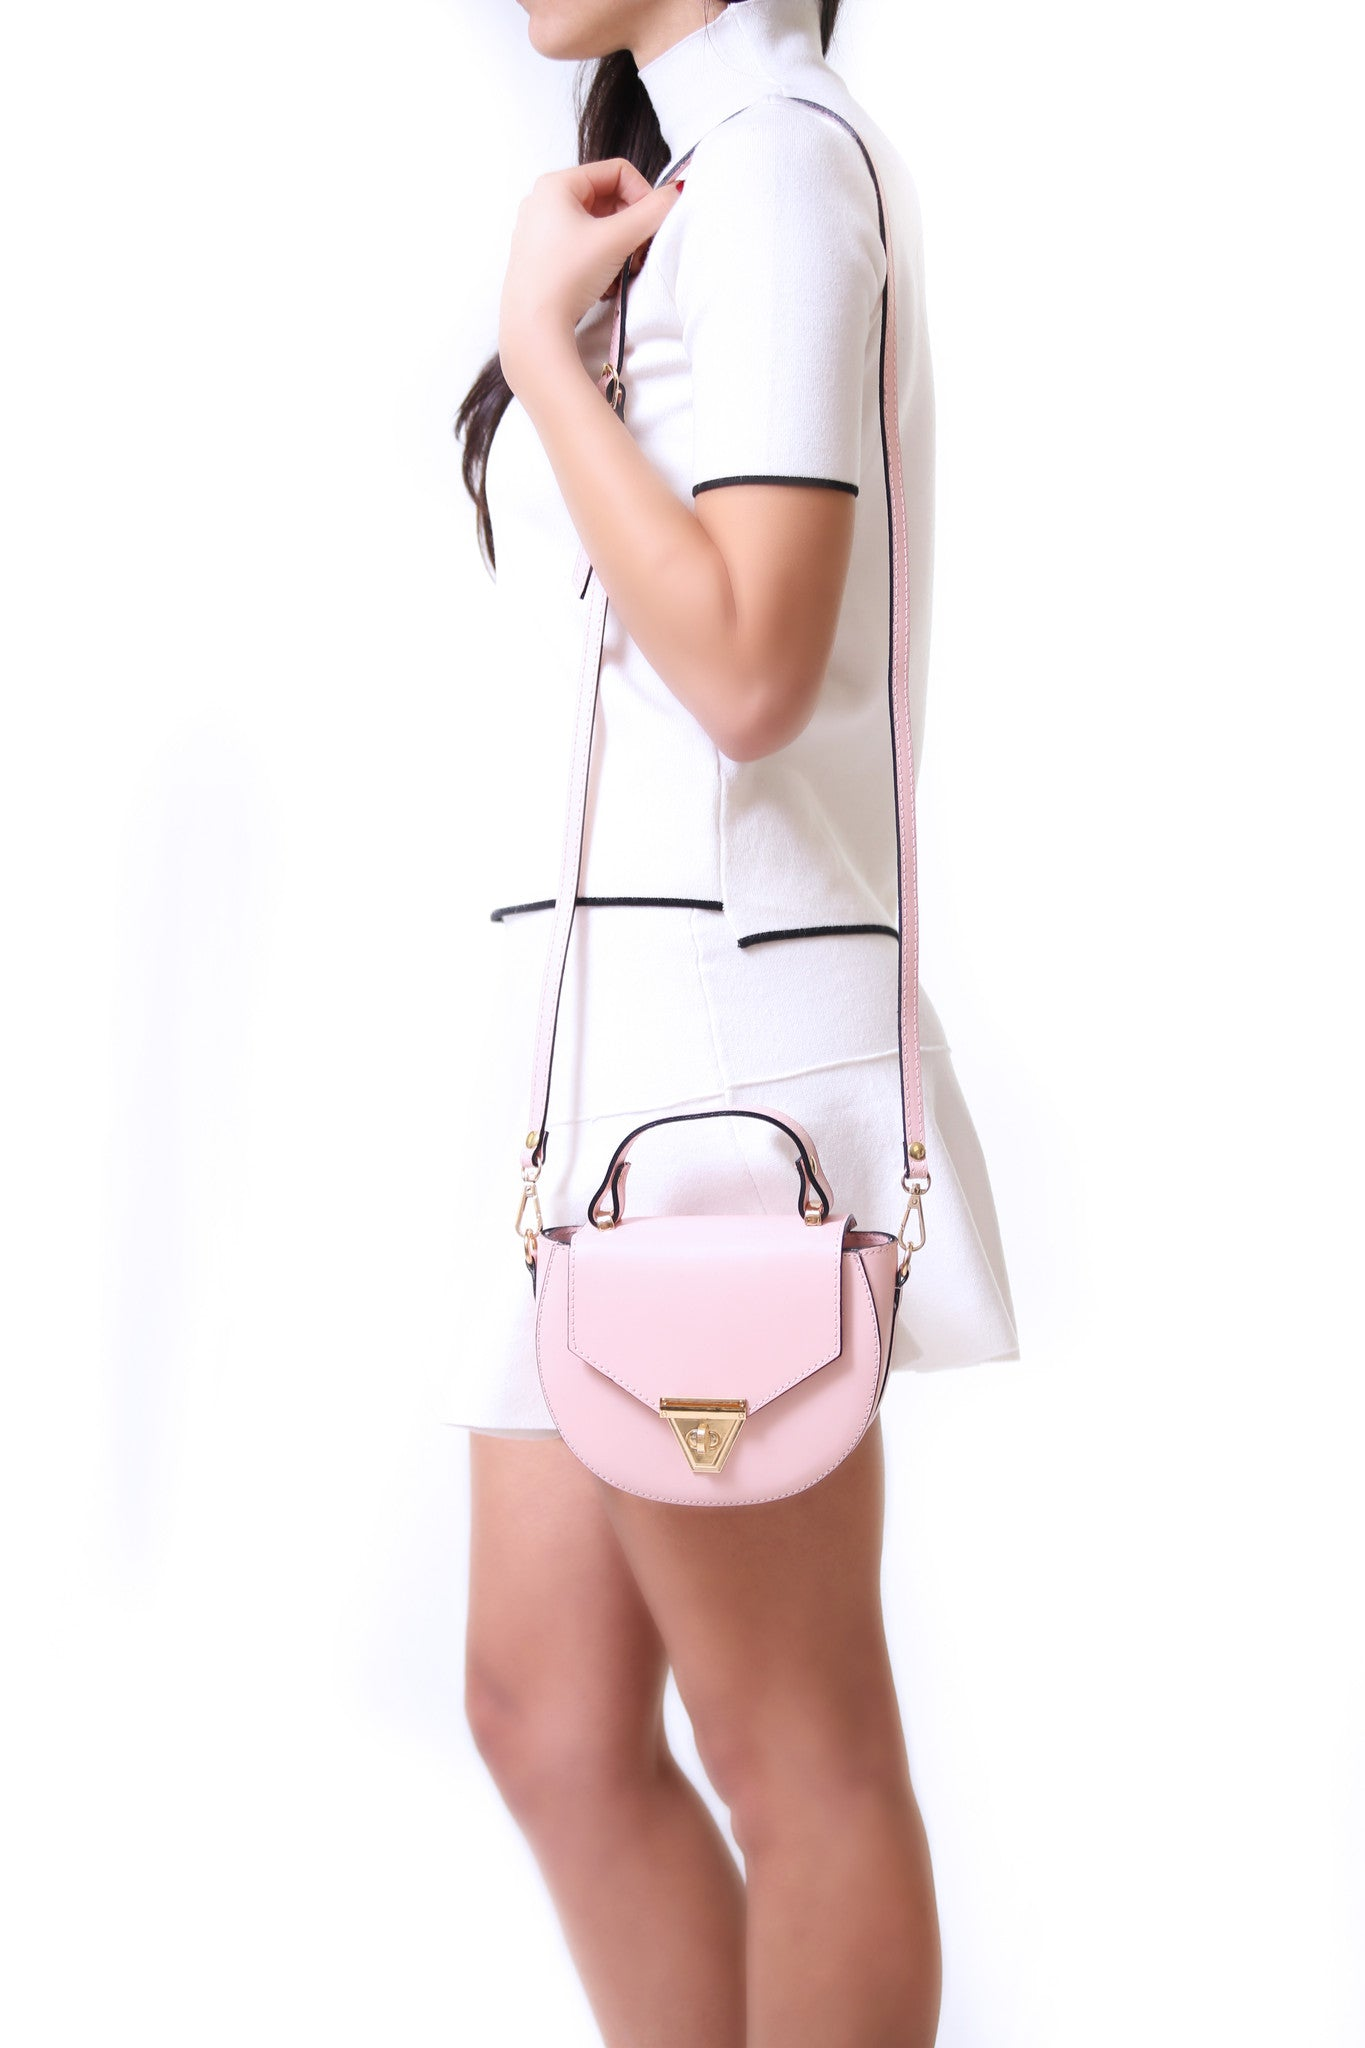 Mimi rose leather crossbody bag - ELEARIA